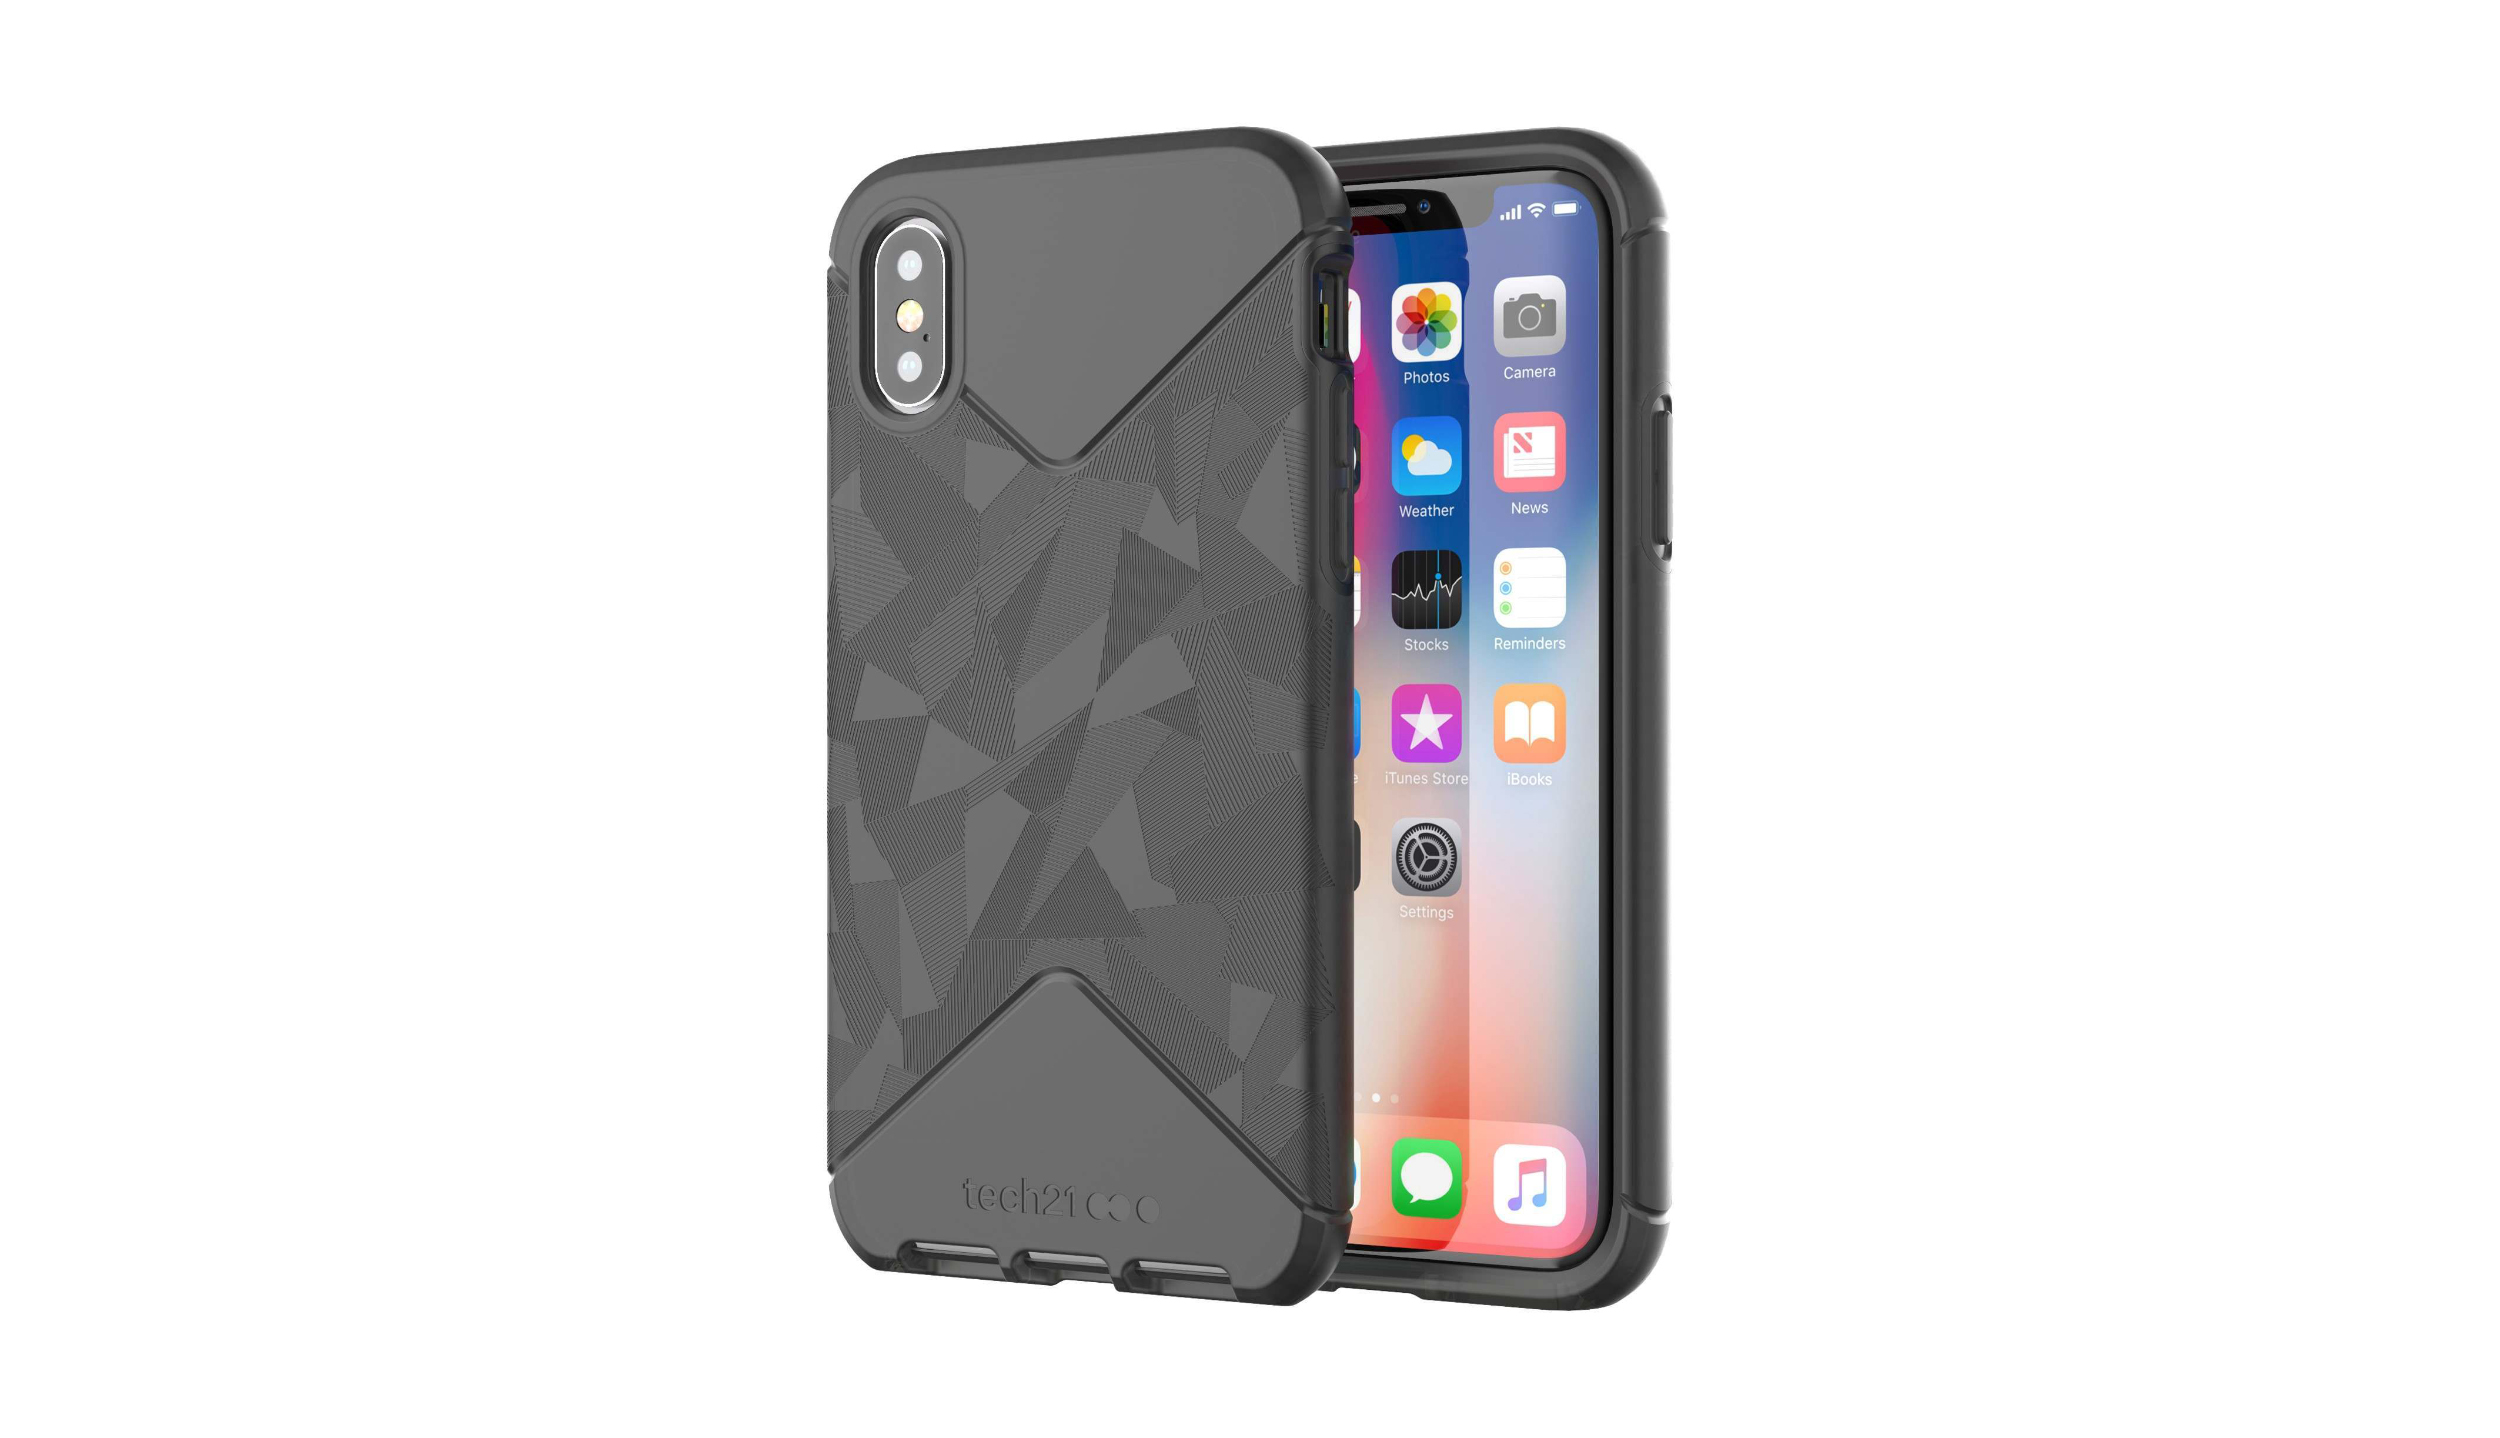 evo-tactical-front-and-back-shown-with-apple-iphone-x 2.jpg